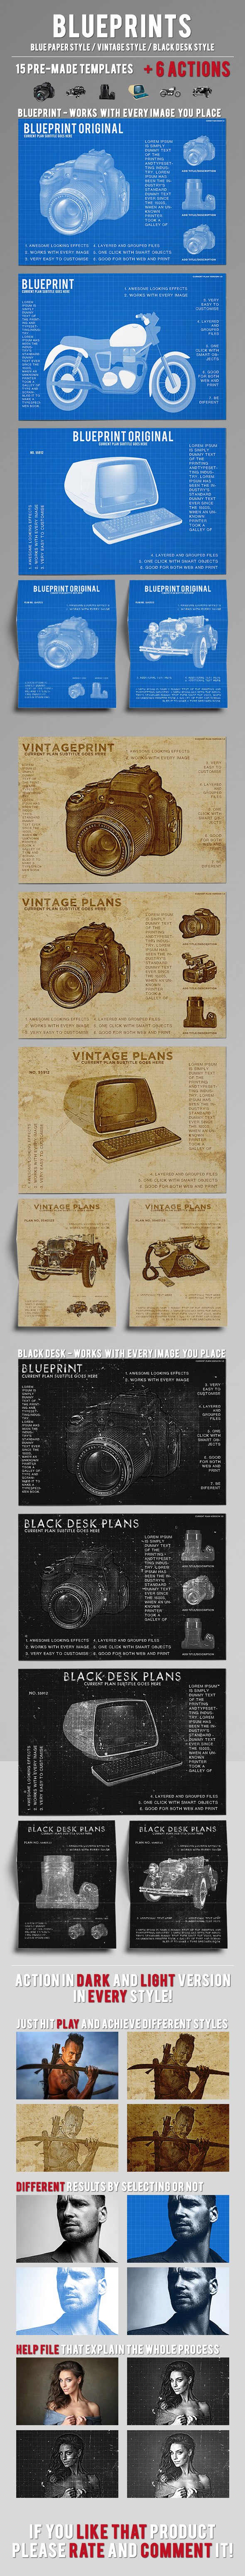 Blueprint, Vintage and Black Chalkboard styles + Actions - Actions Photoshop